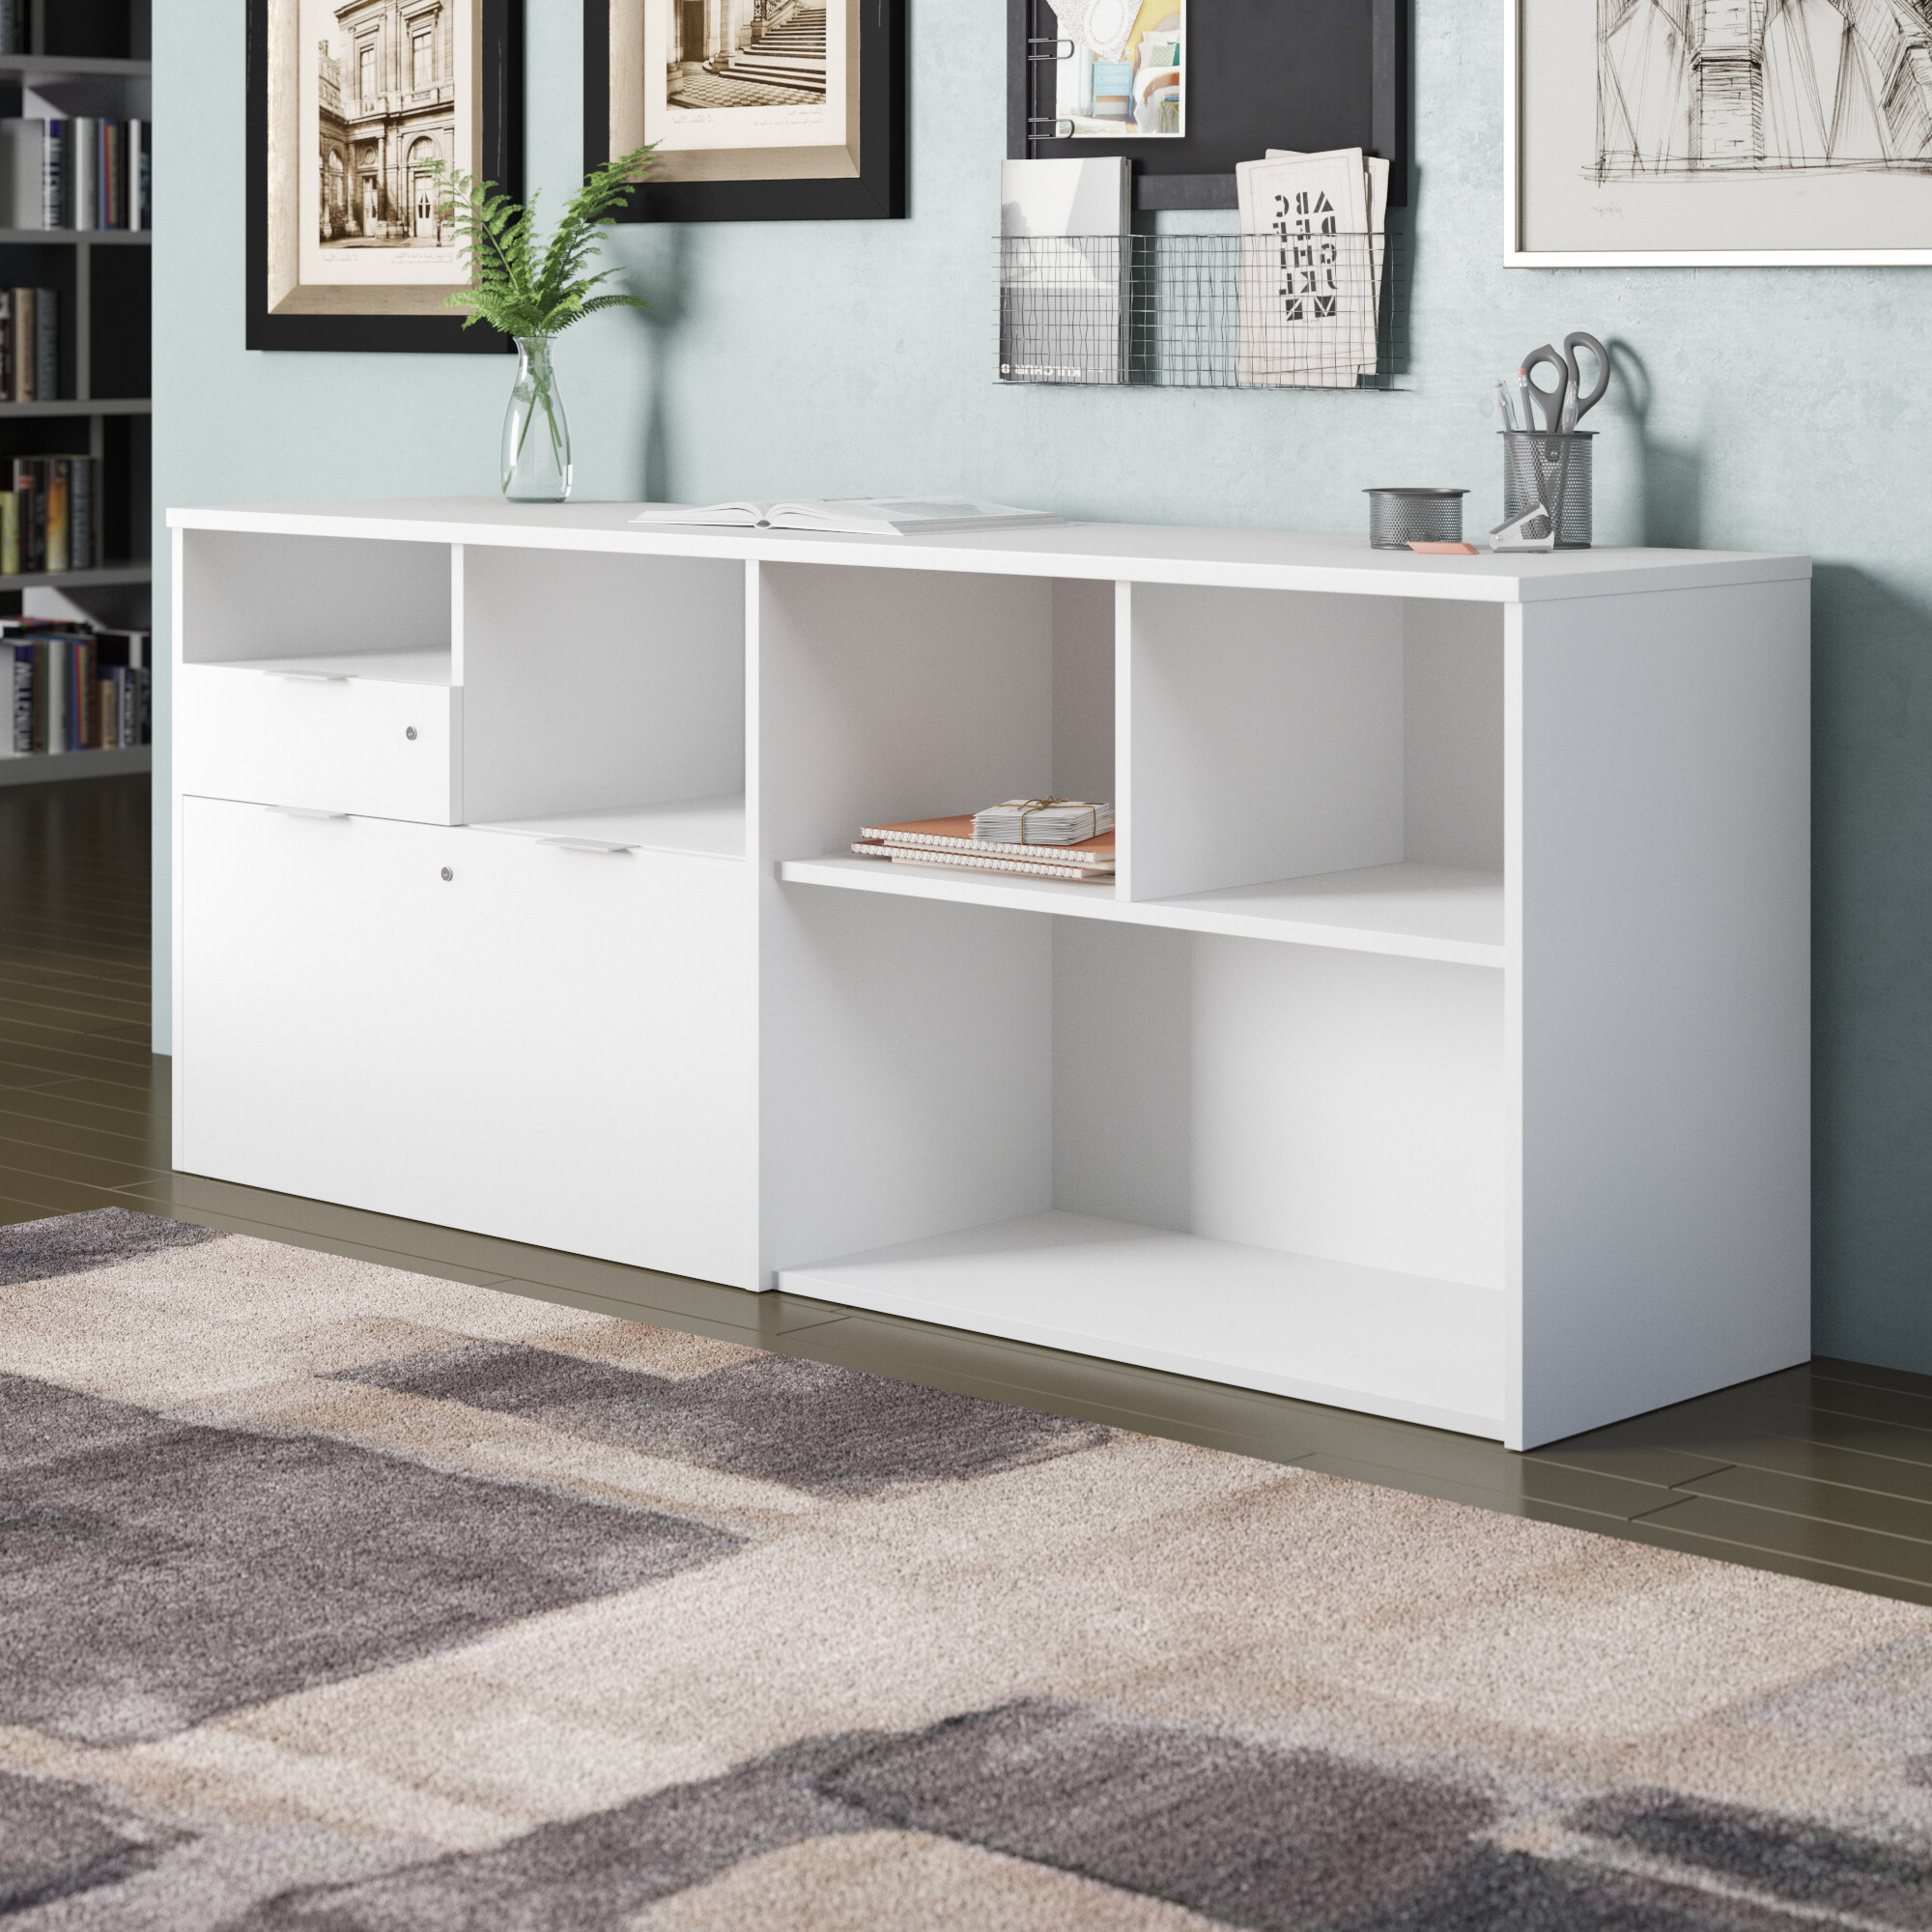 Credenza Locking Office Storage Cabinets You'll Love In 2021 Throughout Well Known Akimitsu Barrel Chair And Ottoman Sets (View 19 of 20)